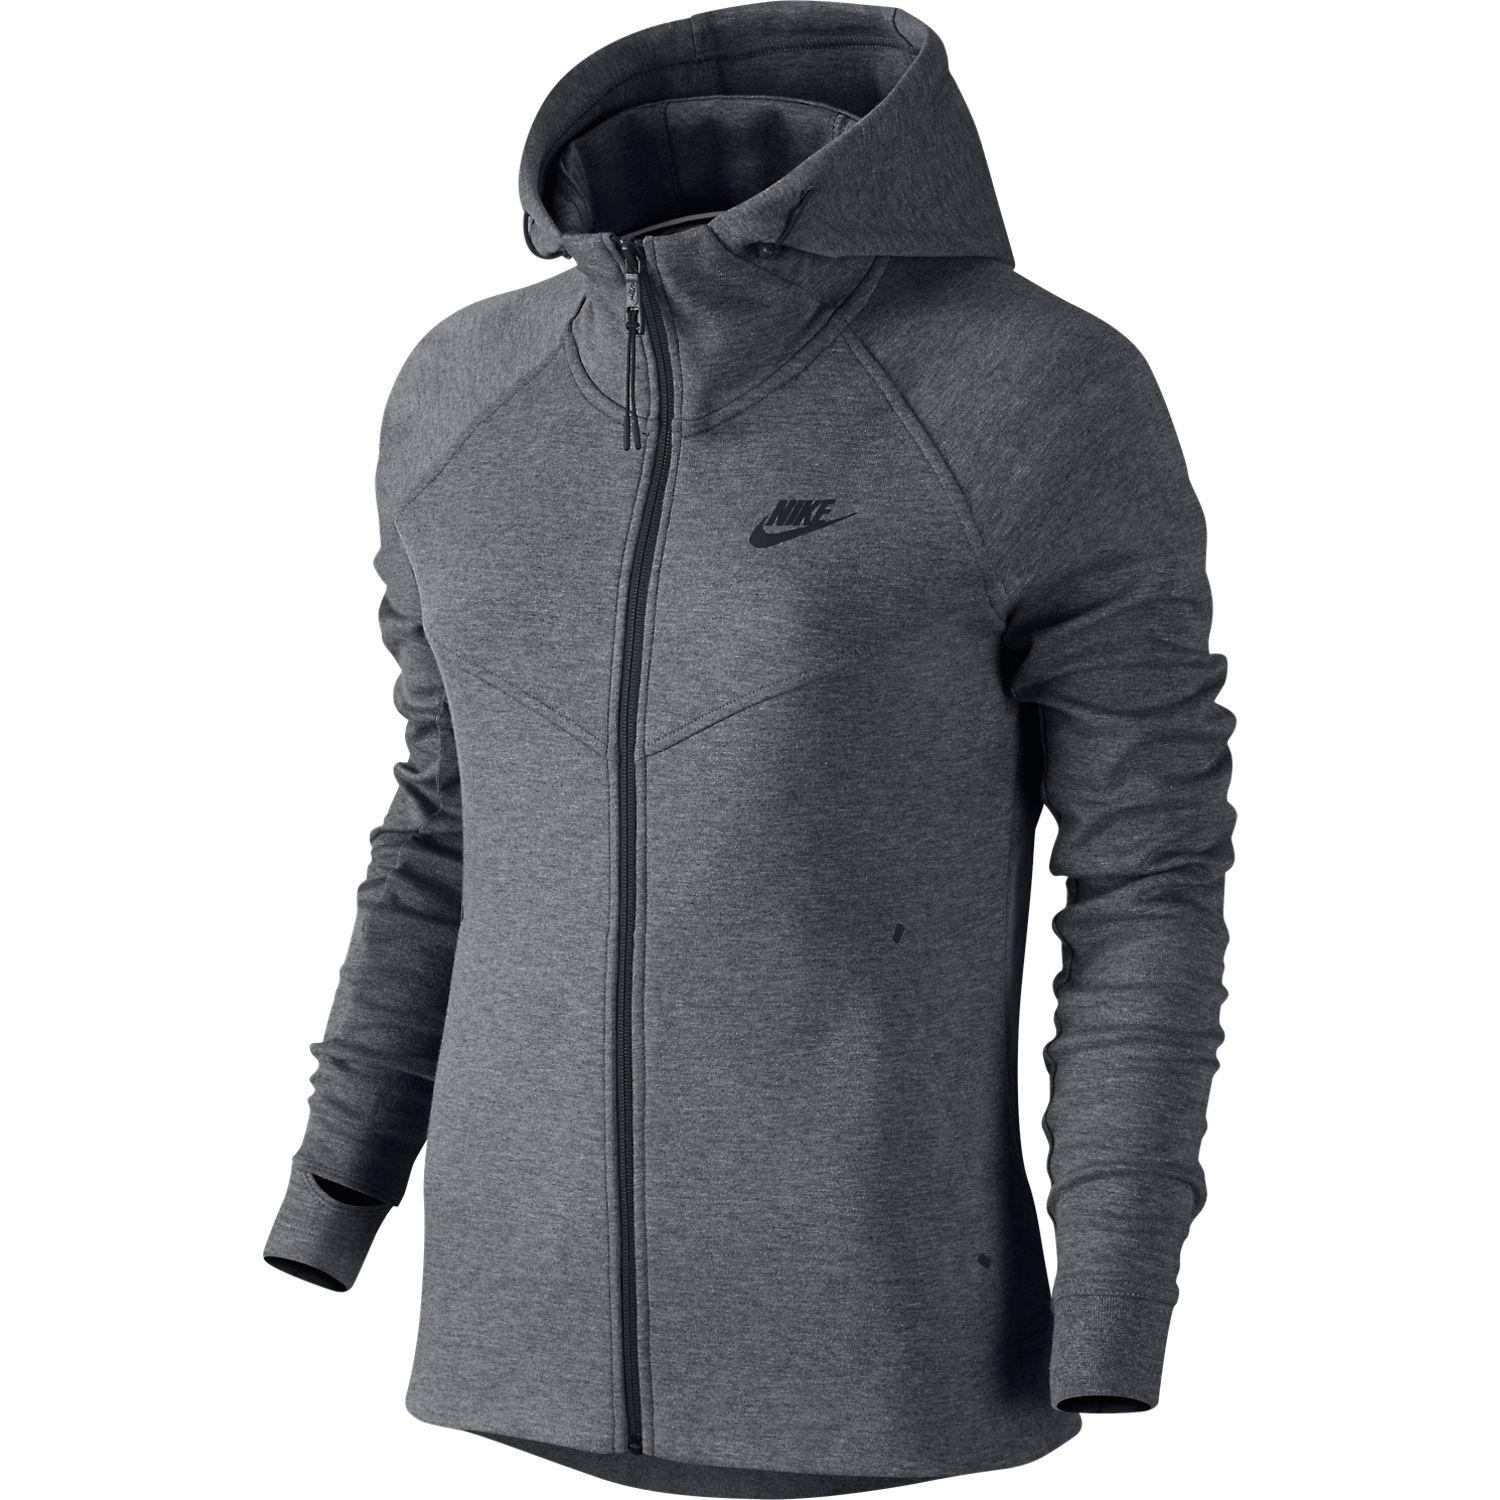 Nike - Tech Fleece Windrunner FZ Grå/Sort Dame